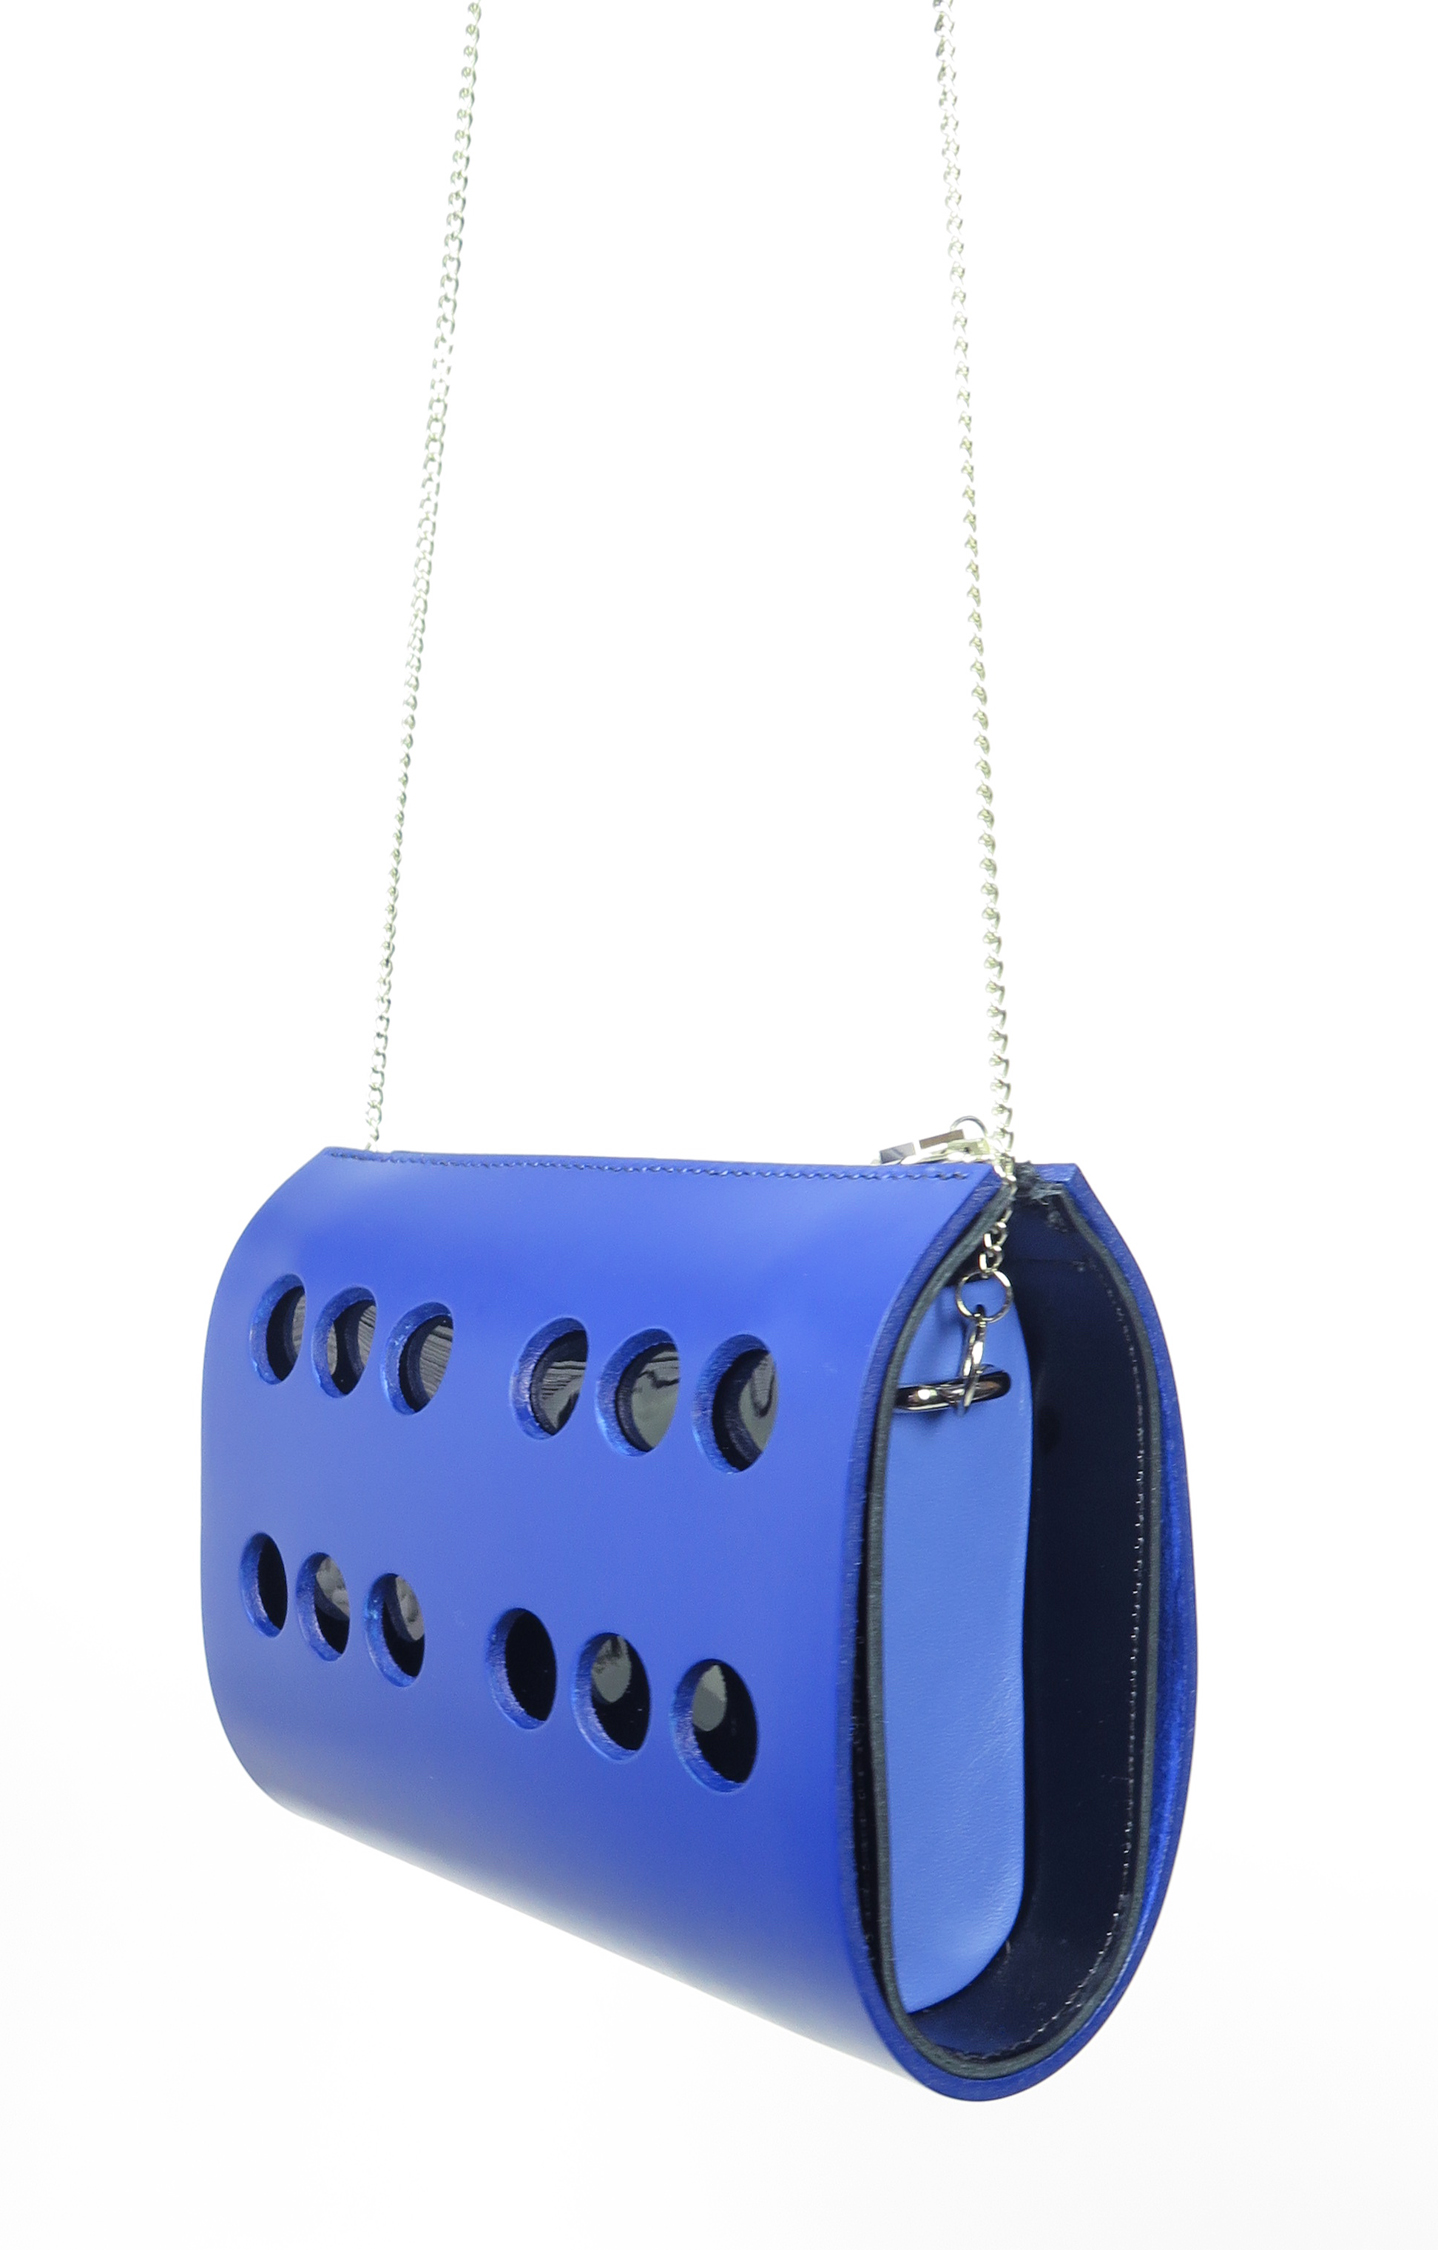 MC-AW15-VENUS-CLUTCH-Blue-1.jpg